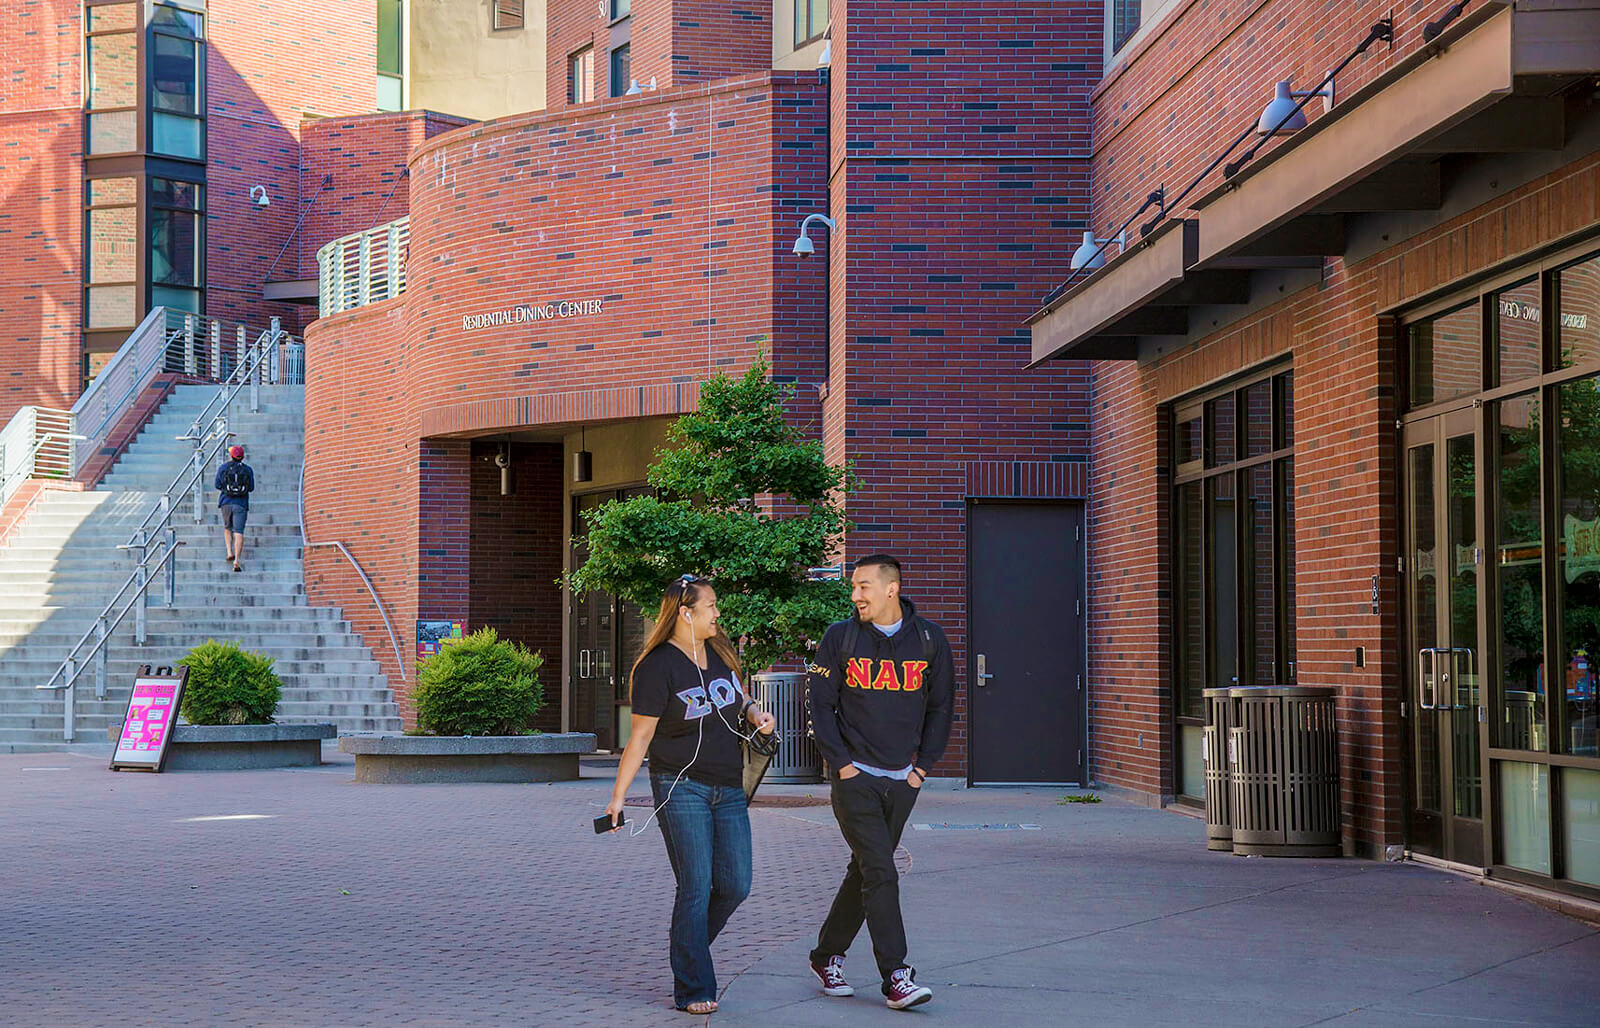 Students walking in front of campus building.